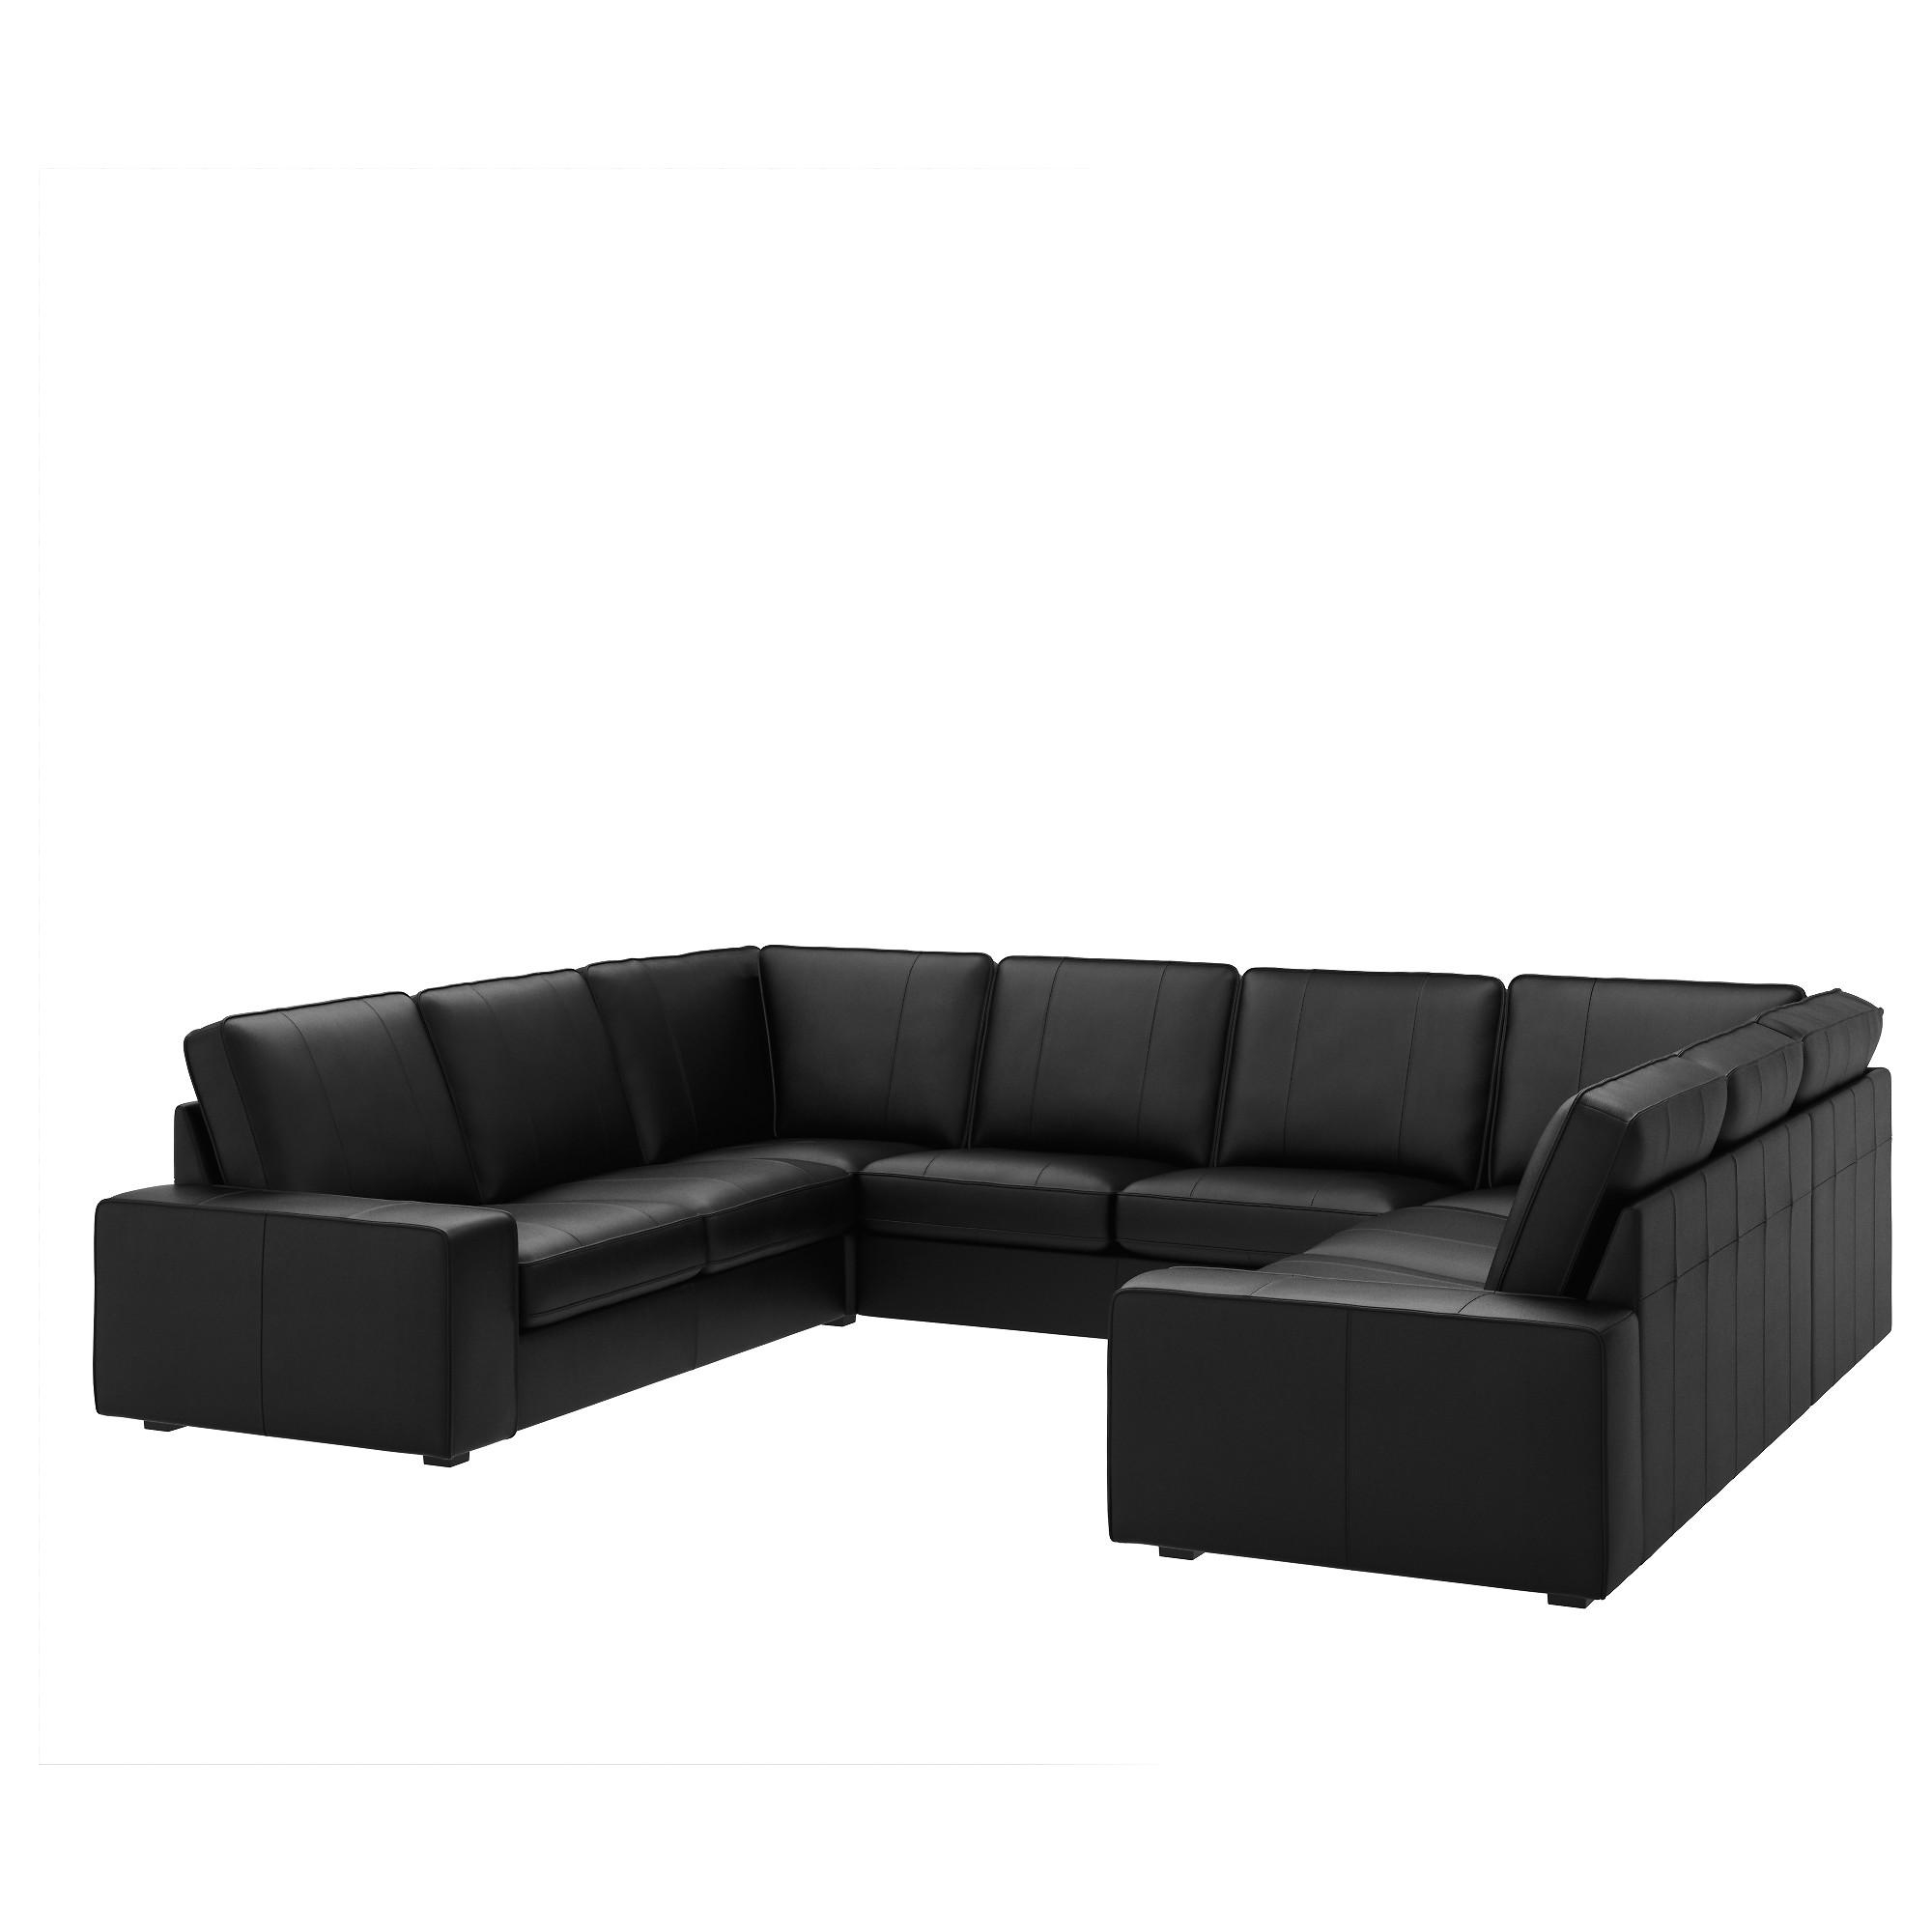 Sectional Sofas & Couches – Ikea Regarding 6 Piece Sectional Sofas Couches (Image 14 of 20)